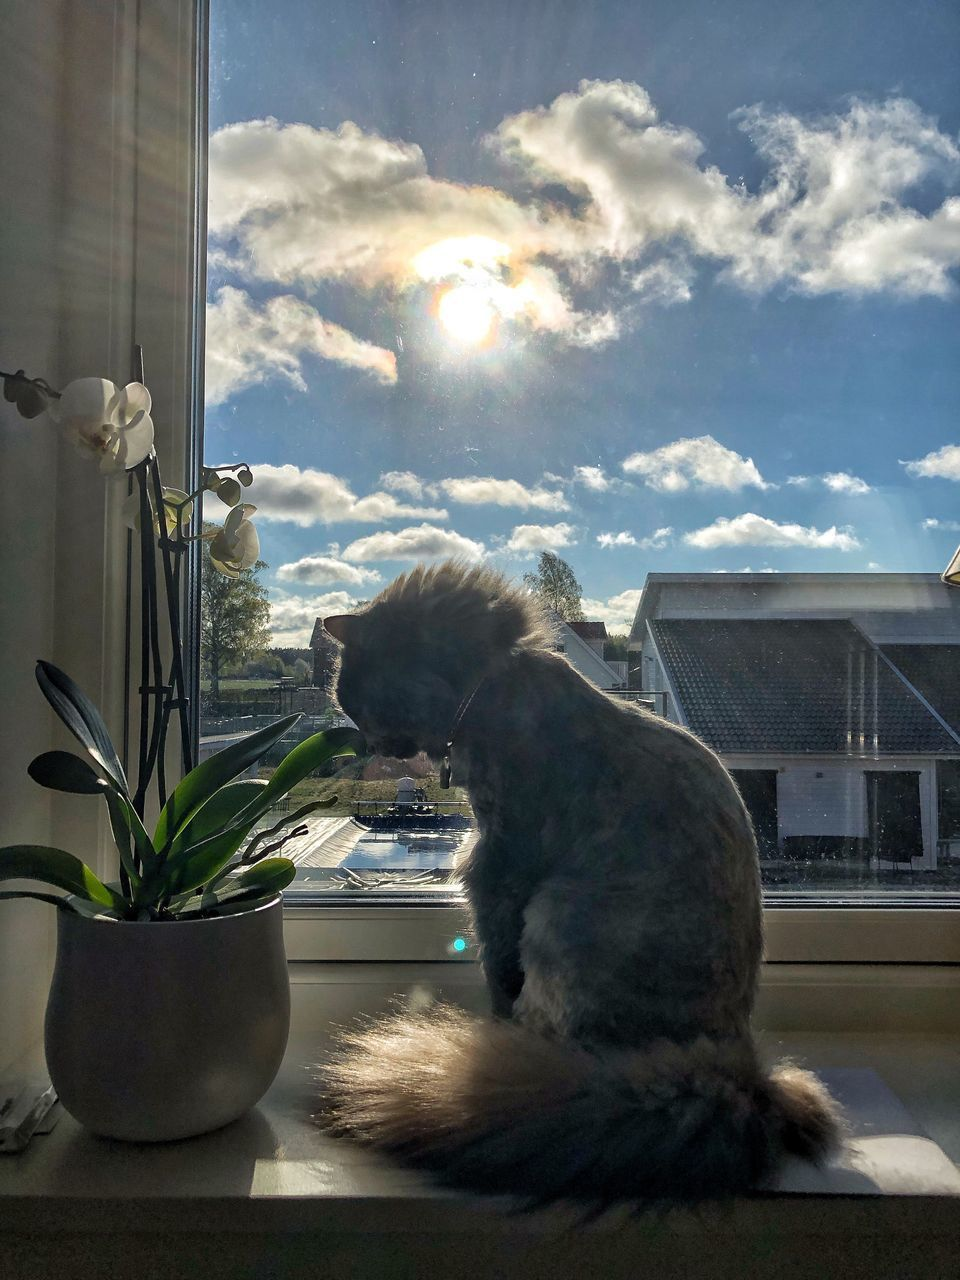 animal themes, animal, mammal, one animal, window, nature, domestic, pets, domestic animals, plant, vertebrate, cat, no people, feline, domestic cat, day, sunlight, sky, flowering plant, window sill, outdoors, whisker